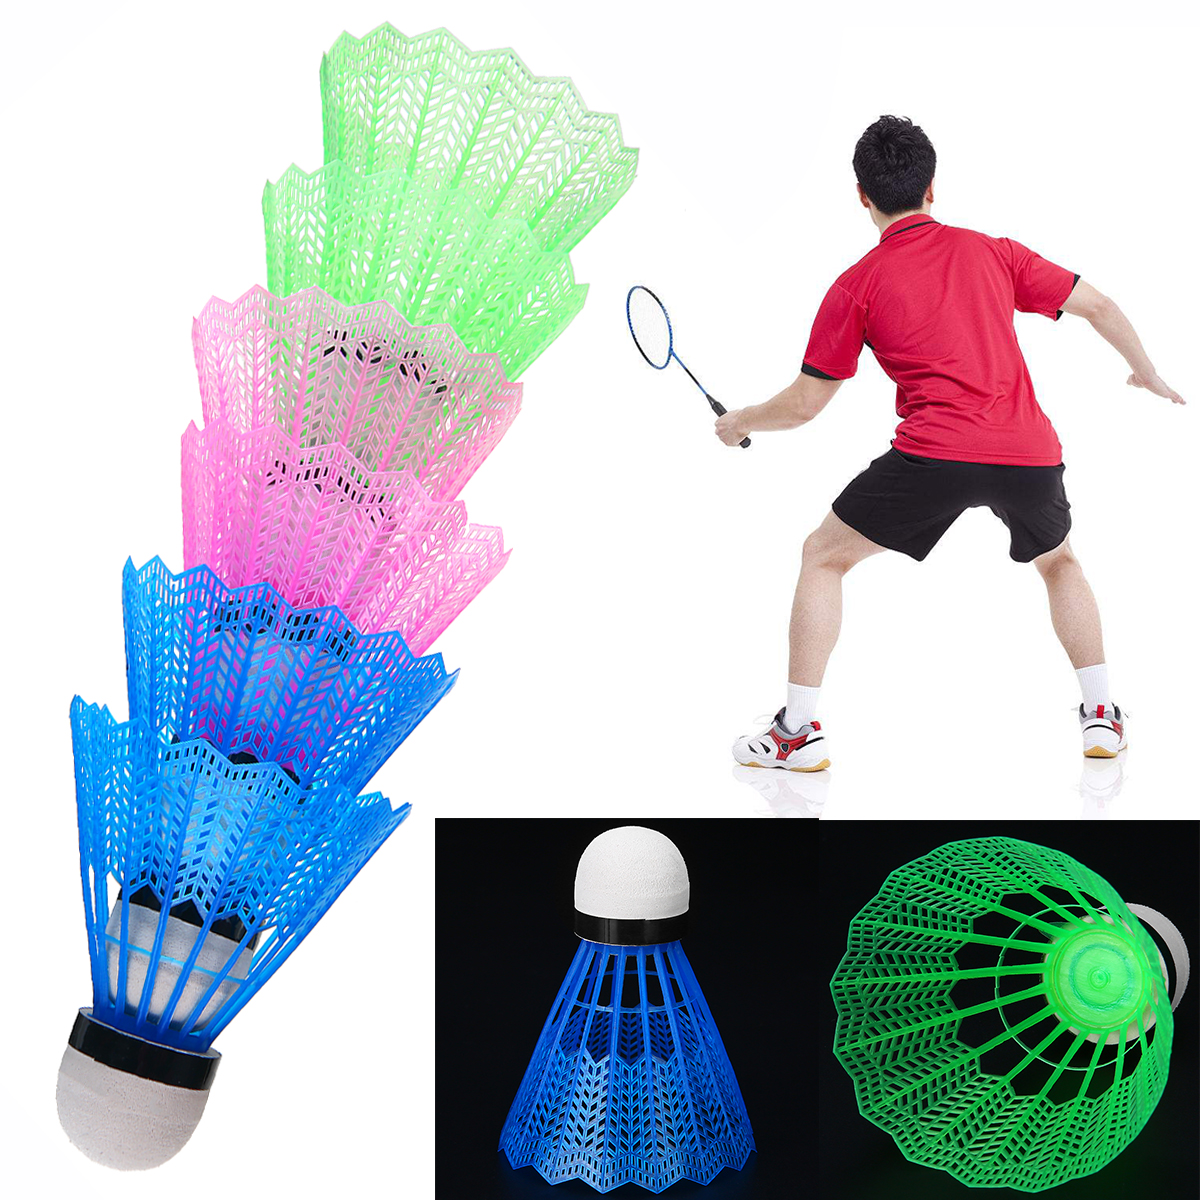 Multicolor 6Pcs Shuttlecocks Plastic Badminton Balls Training Exercise Tools For Game Leisure Indoor Outdoor Sport